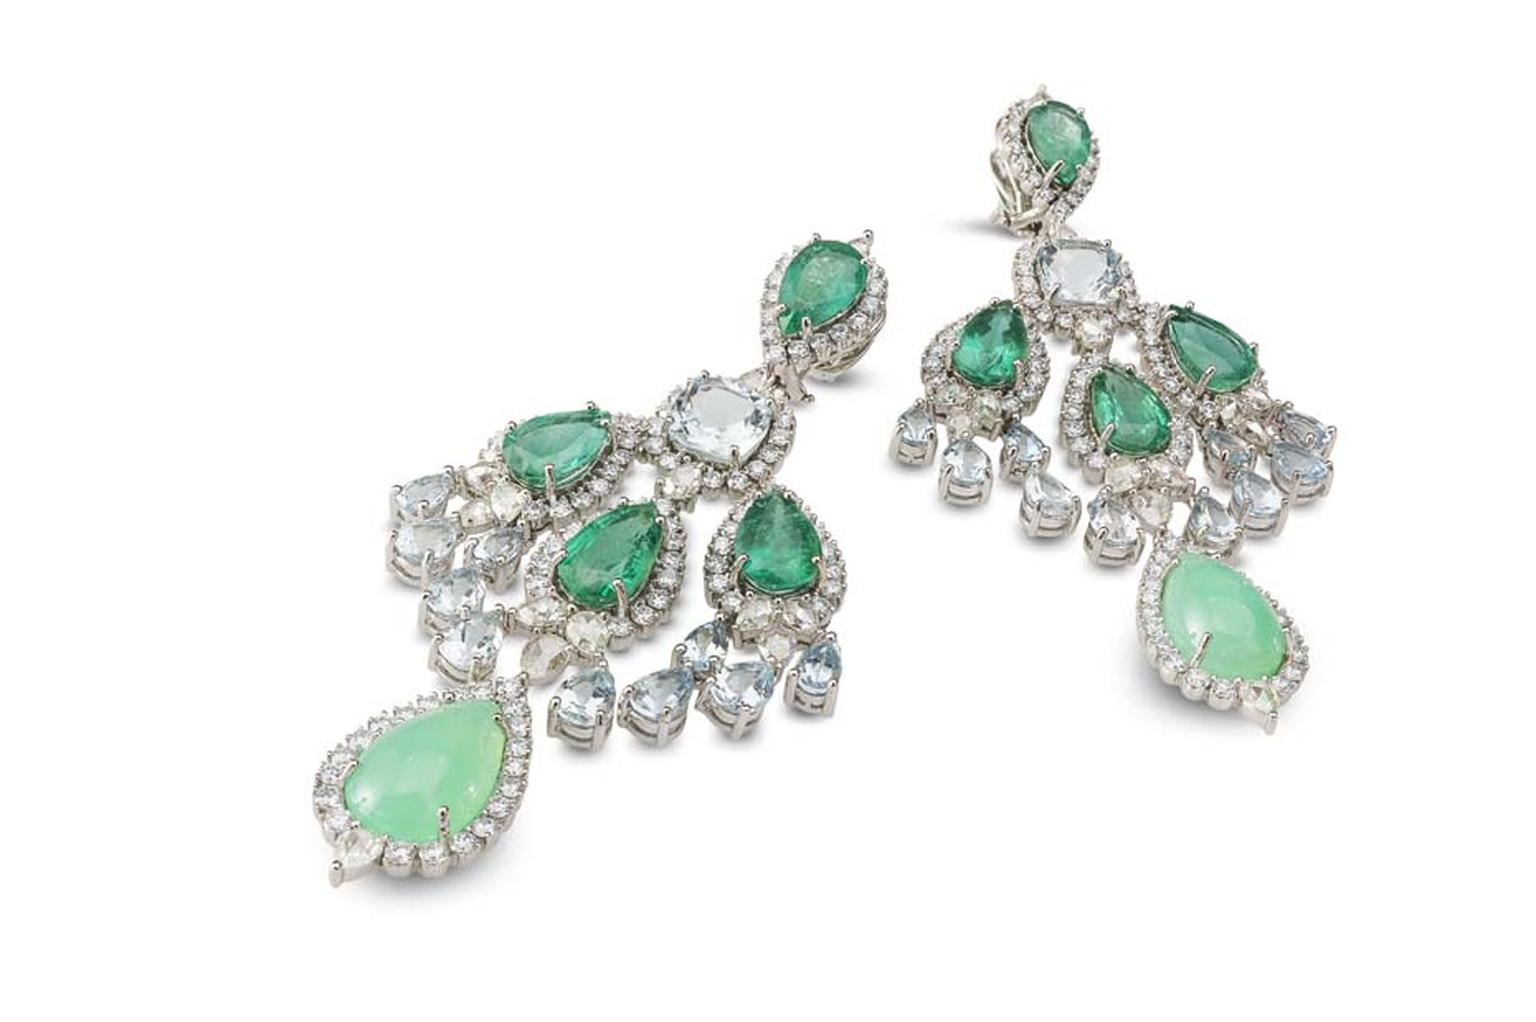 Farah Khan gold earrings featuring diamonds (11.03ct), chrysoprase (14.98ct), aquamarine (15.44ct) and emeralds (22.91ct).